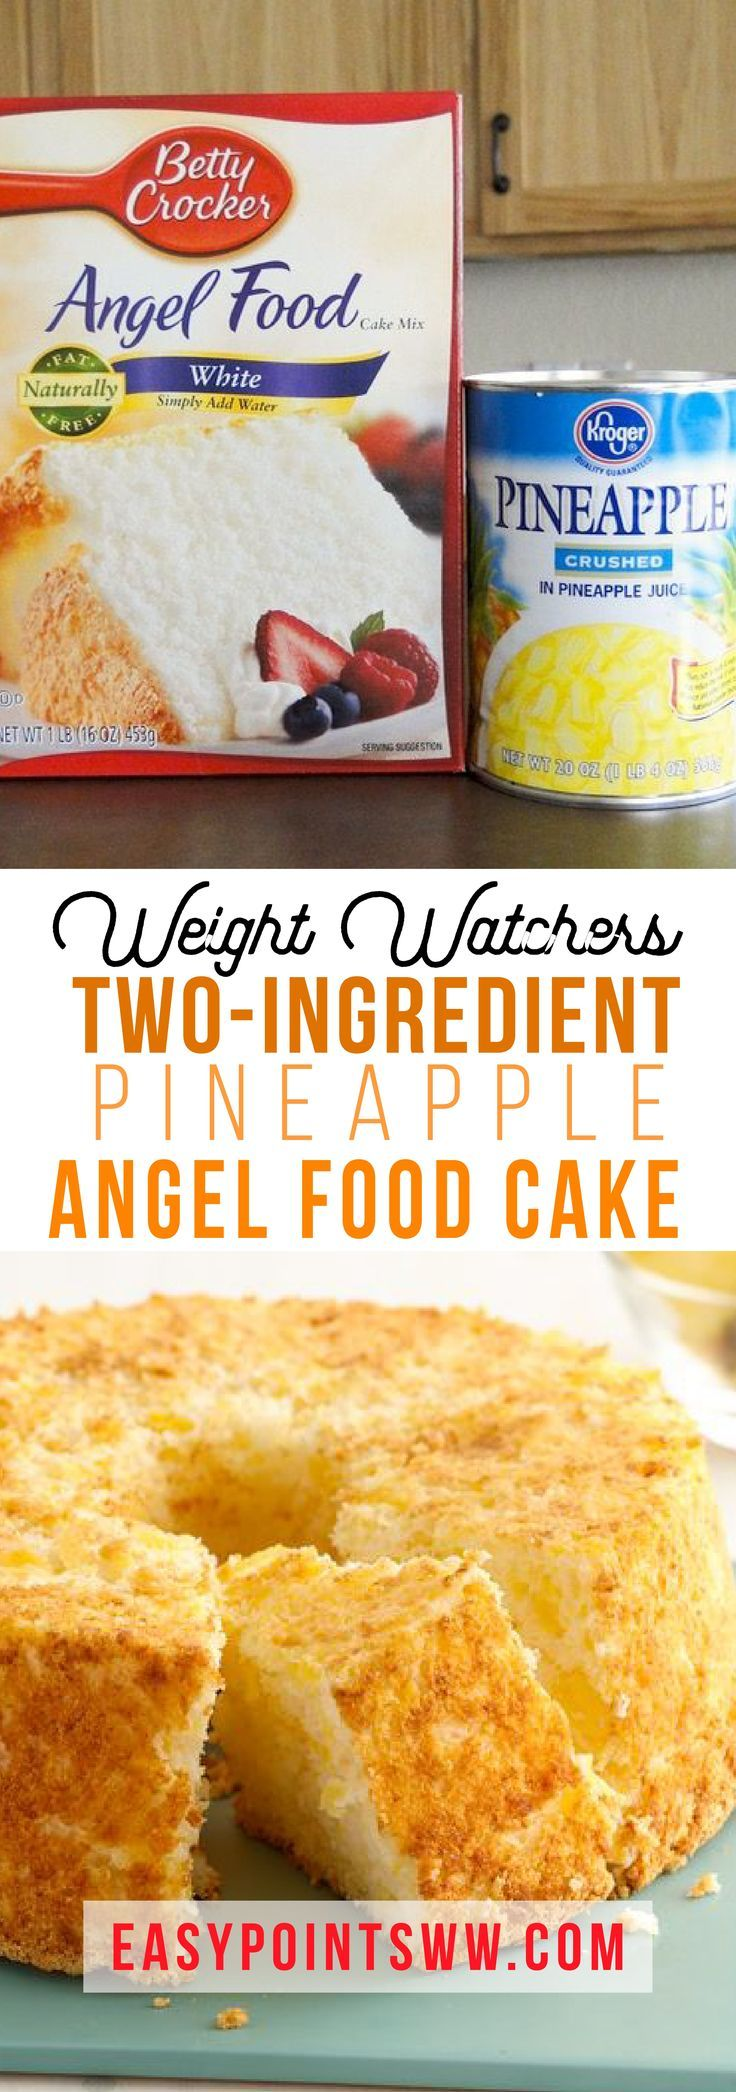 2-INGREDIENT WEIGHT WATCHERS PINEAPPLE ANGEL FOOD CAKE ♥️